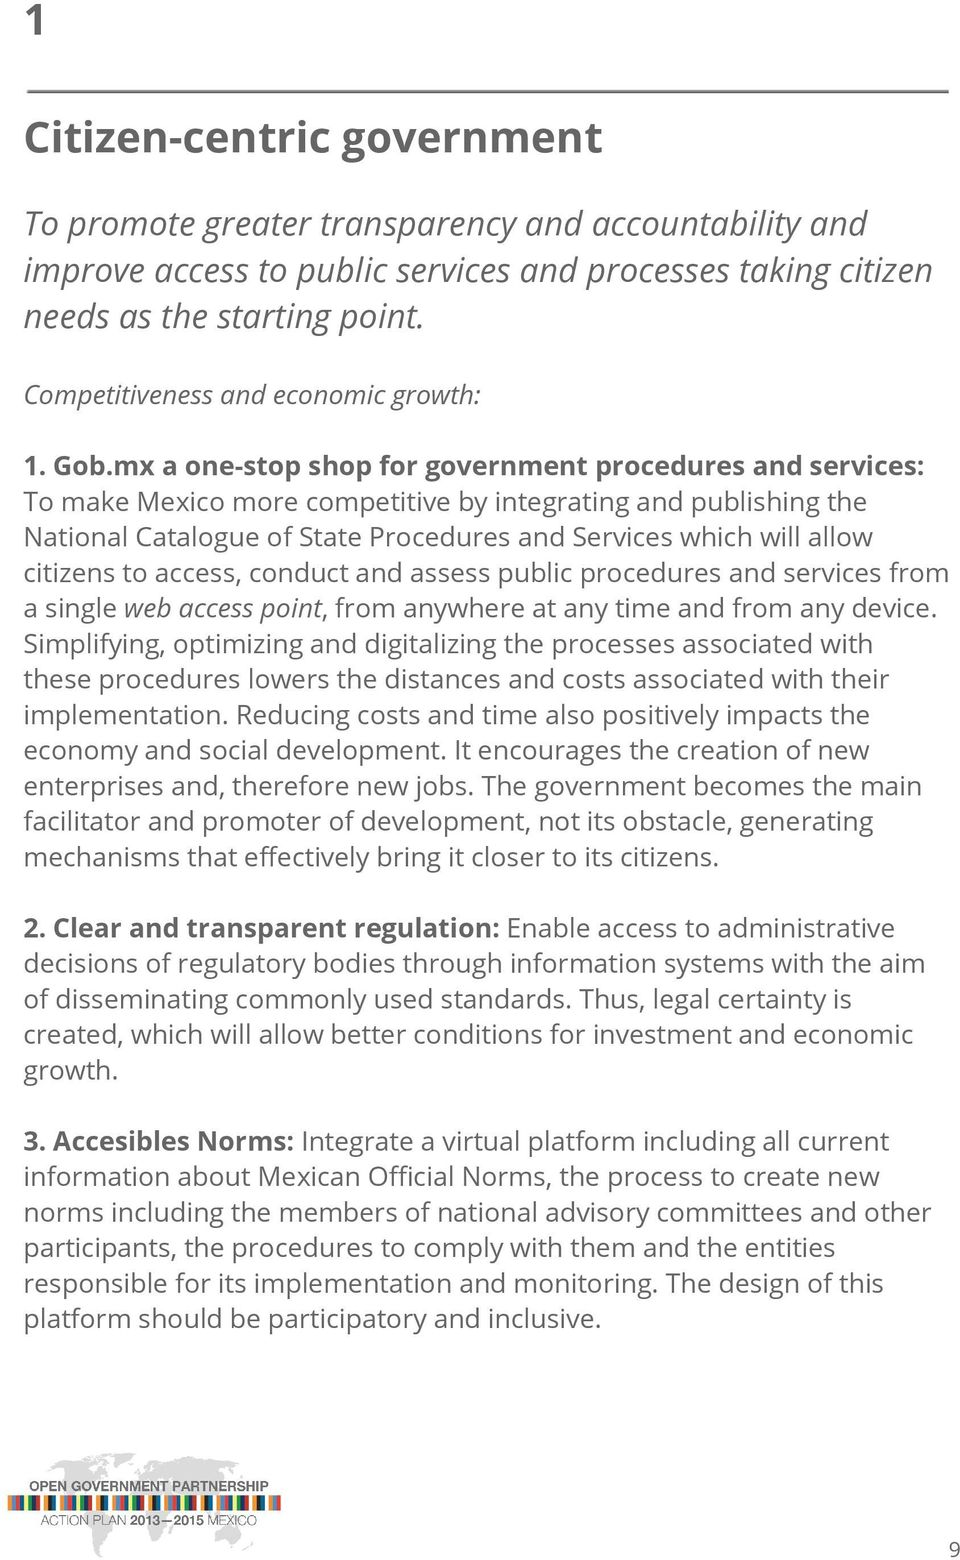 mx a one-stop shop for government procedures and services: To make Mexico more competitive by integrating and publishing the National Catalogue of State Procedures and Services which will allow